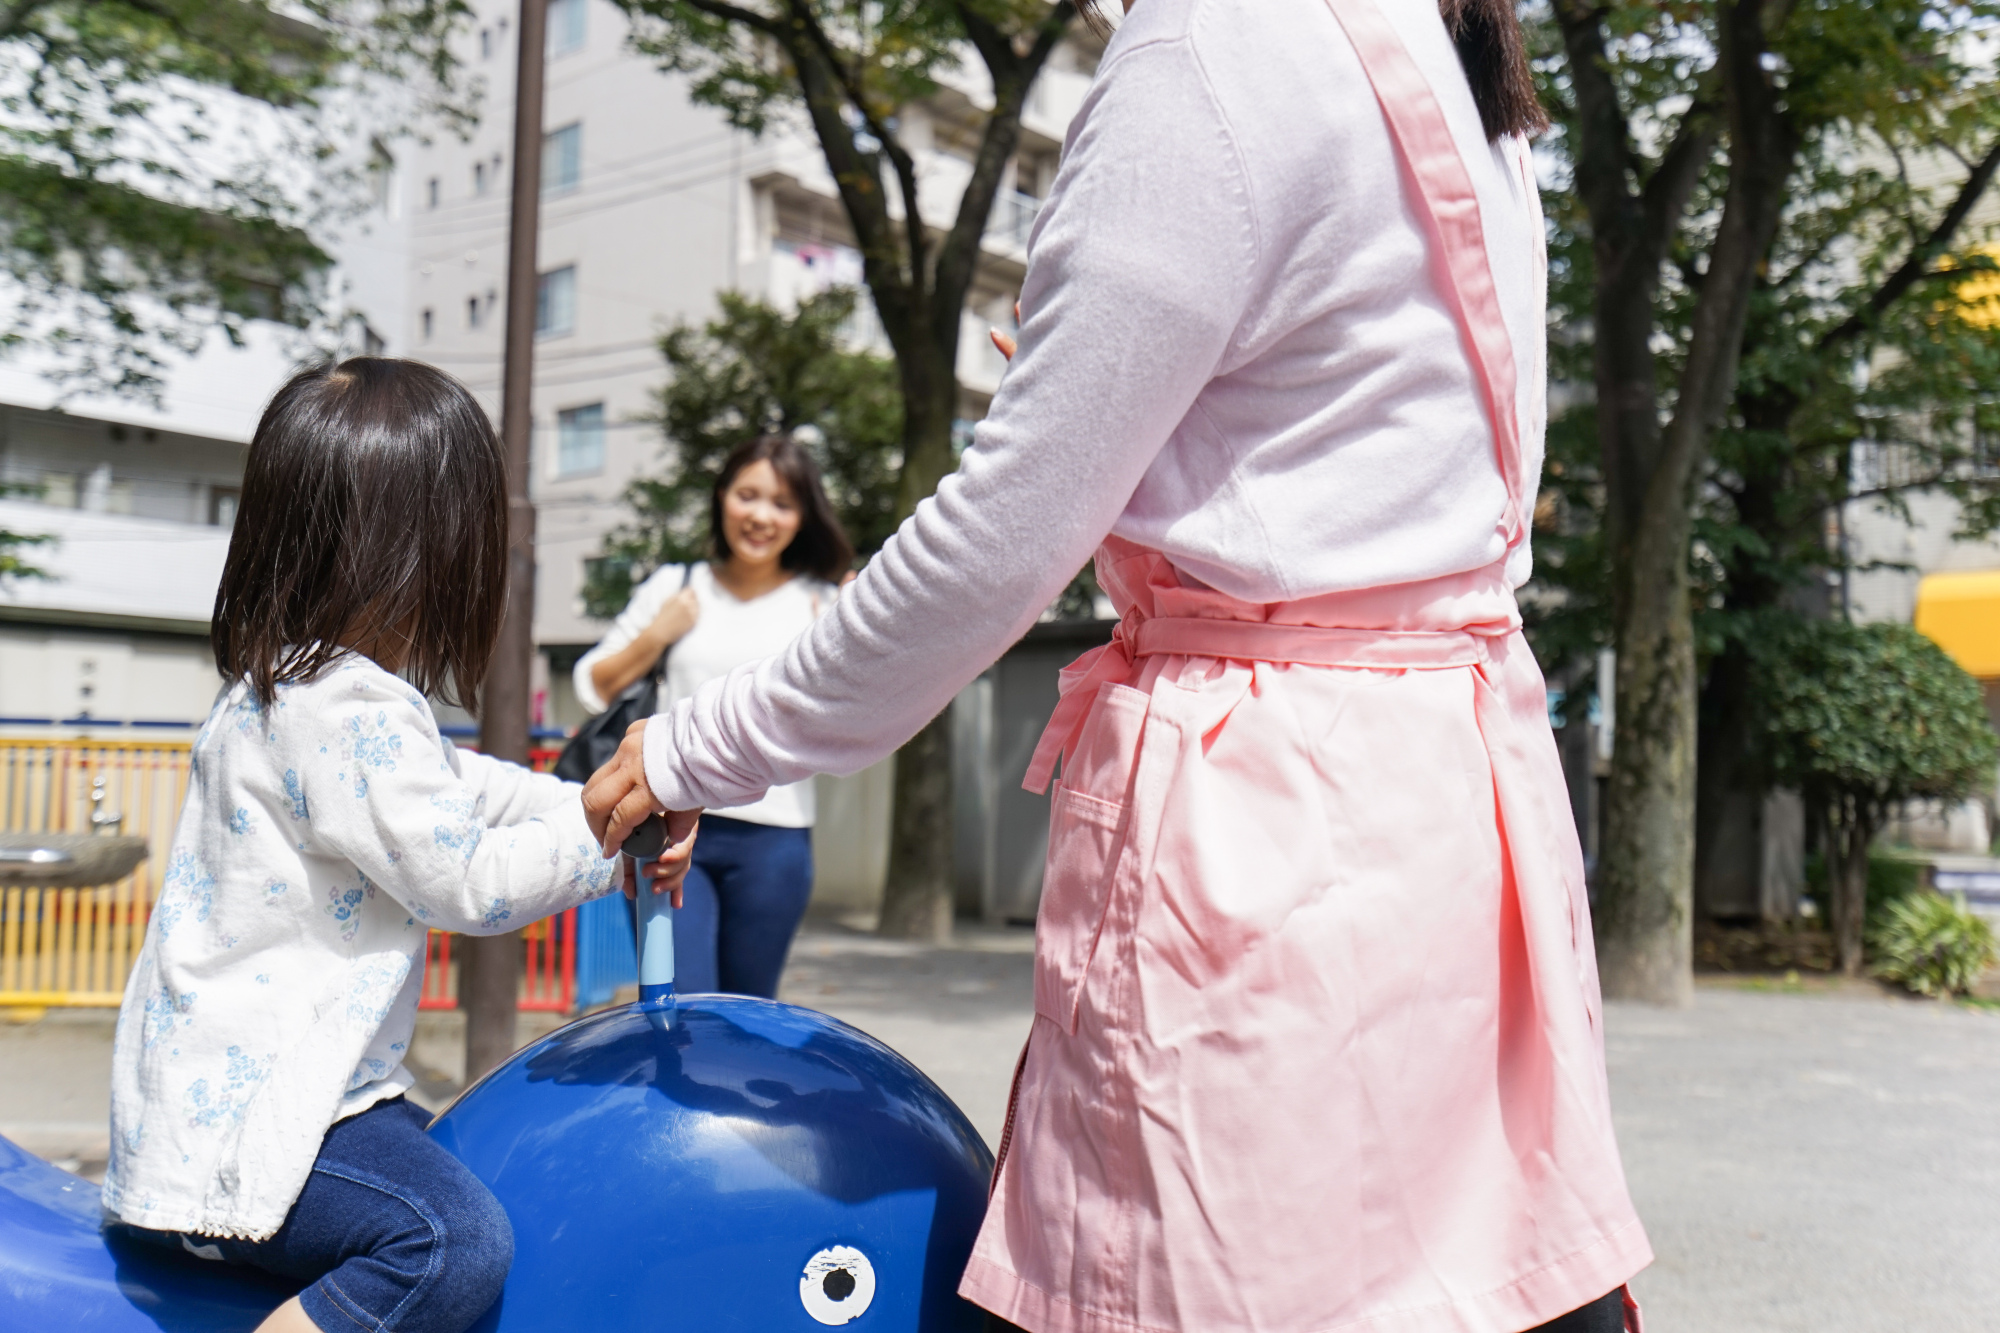 Early childhood education staff in Japan feel the least valued in society by children and parents among eight member countries of the OECD, according to a 2018 survey by the organization. | GETTY IMAGES